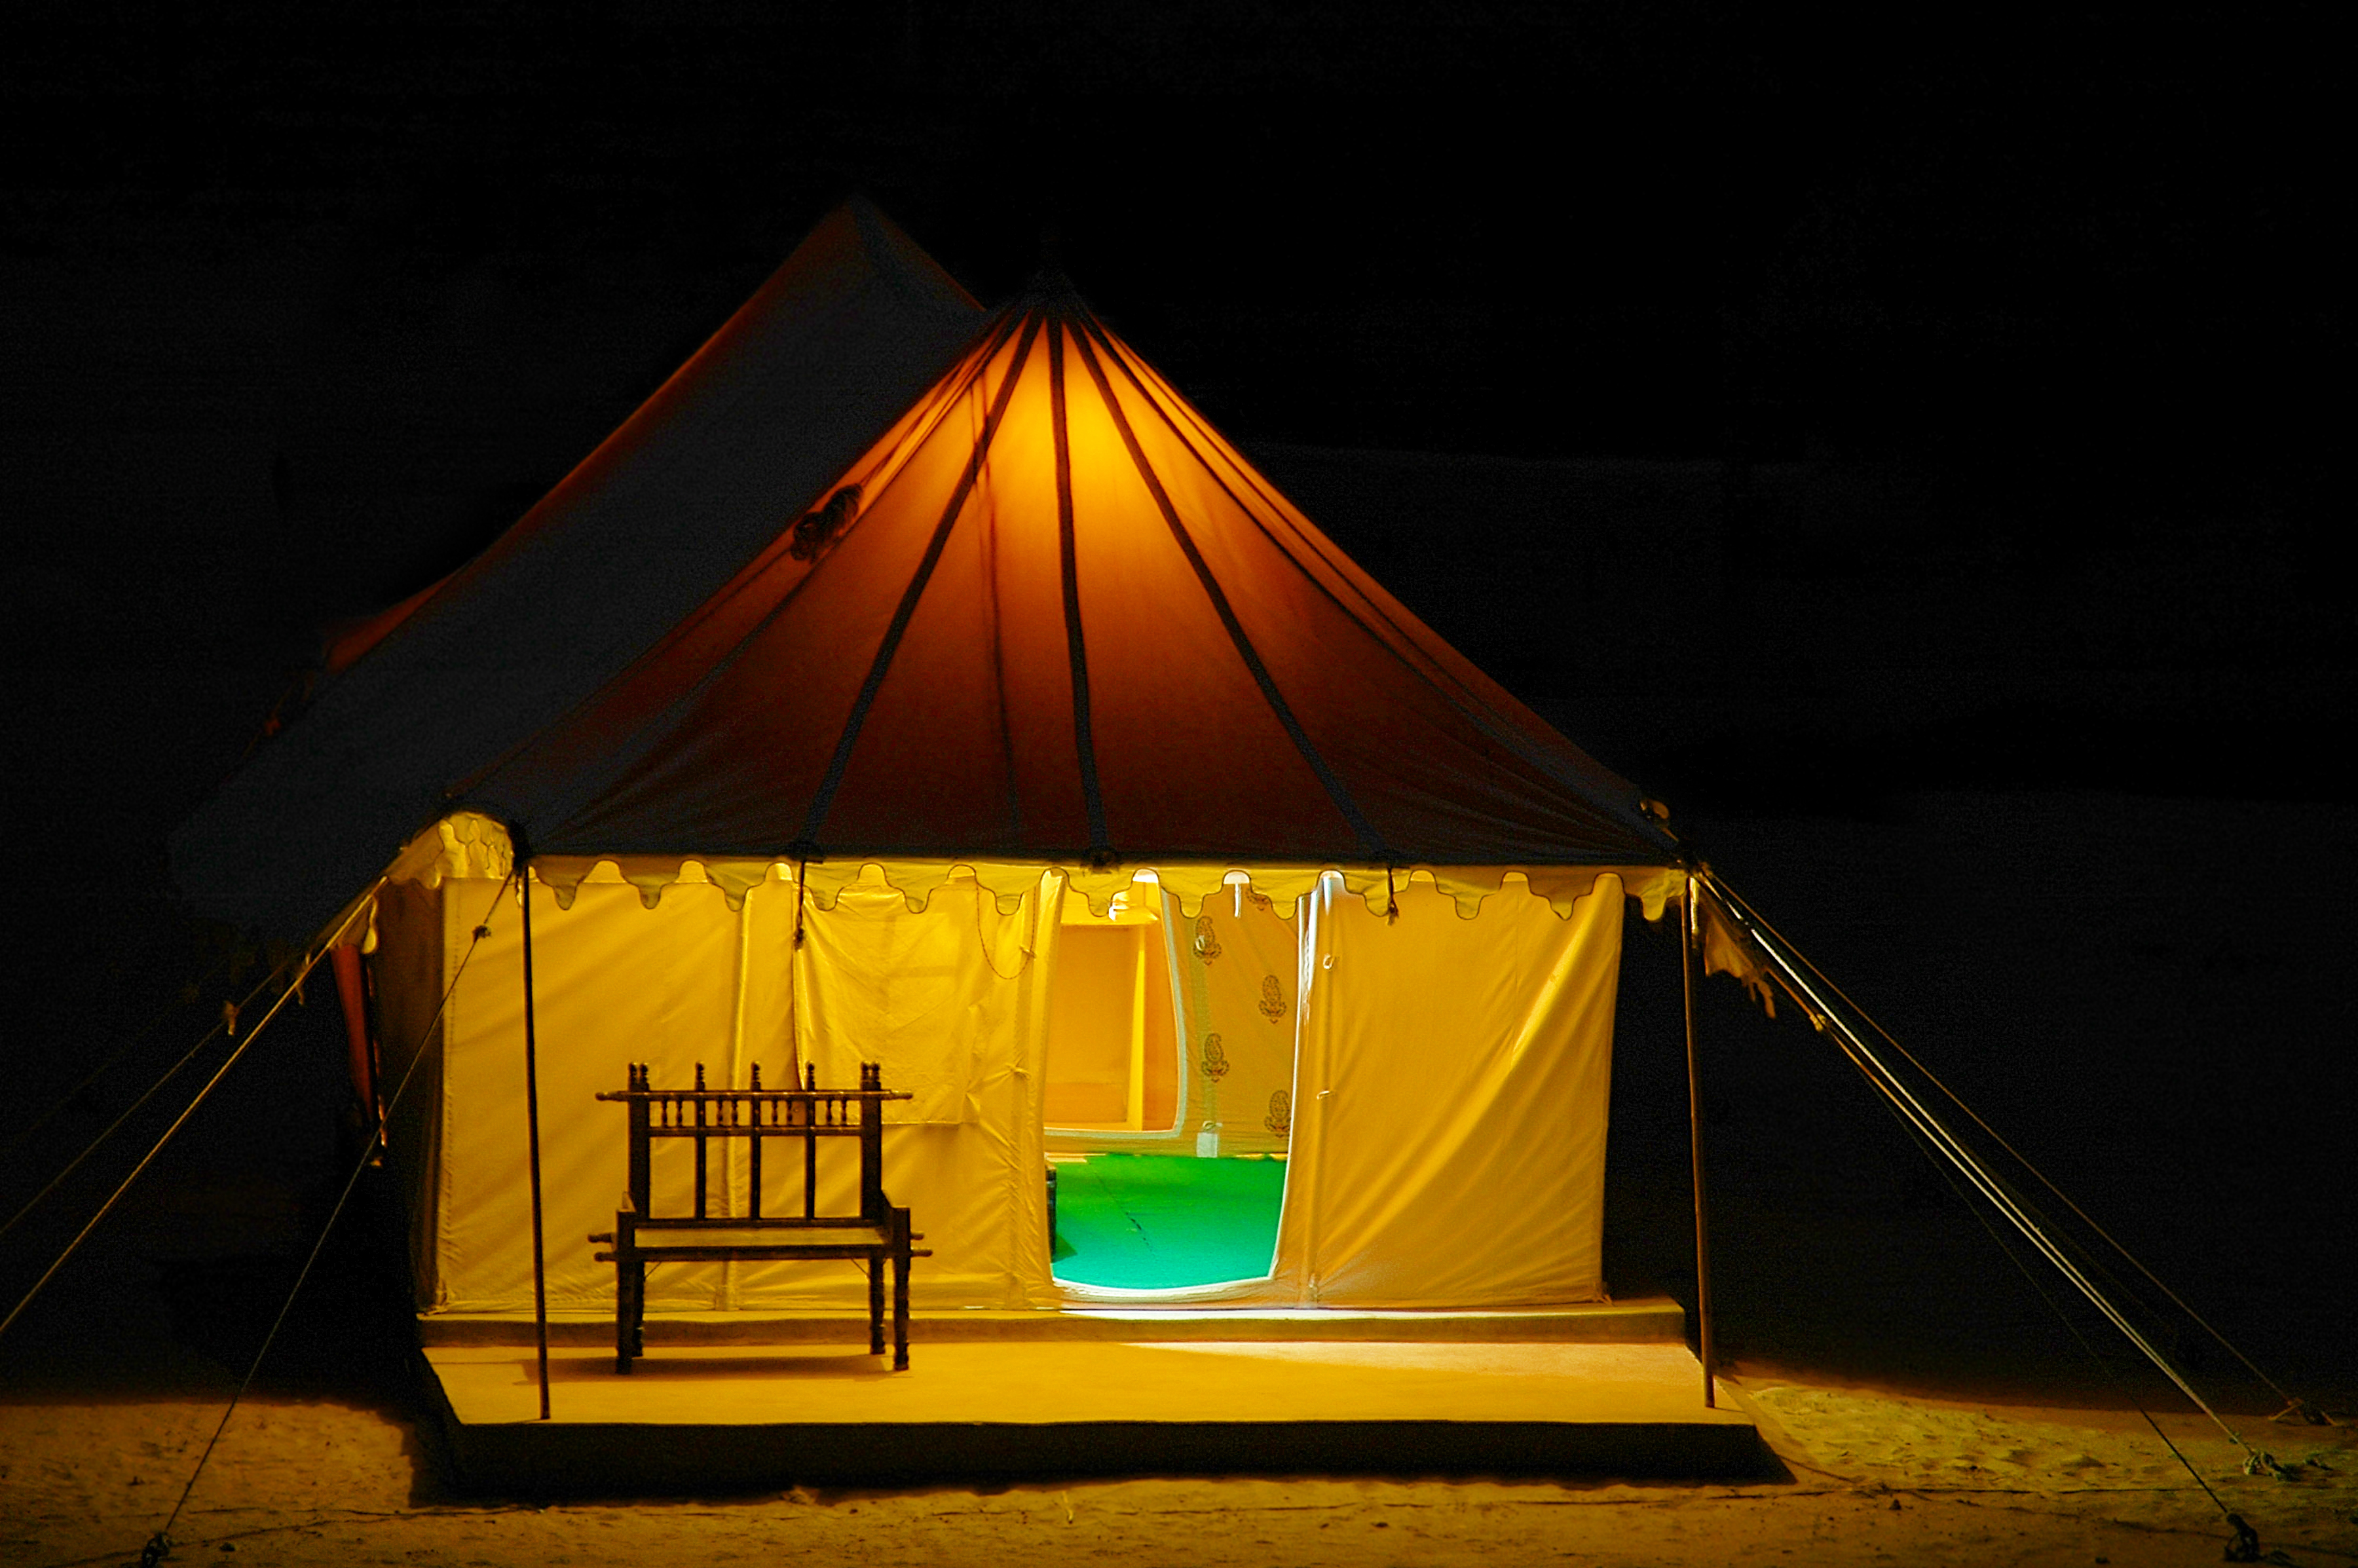 03 Nights Pkg - With Transport - HOTEL MOONLIGHT JAISALMER & Information of HOTEL MOONLIGHT JAISALMER - 03 Nights Pkg - With ...